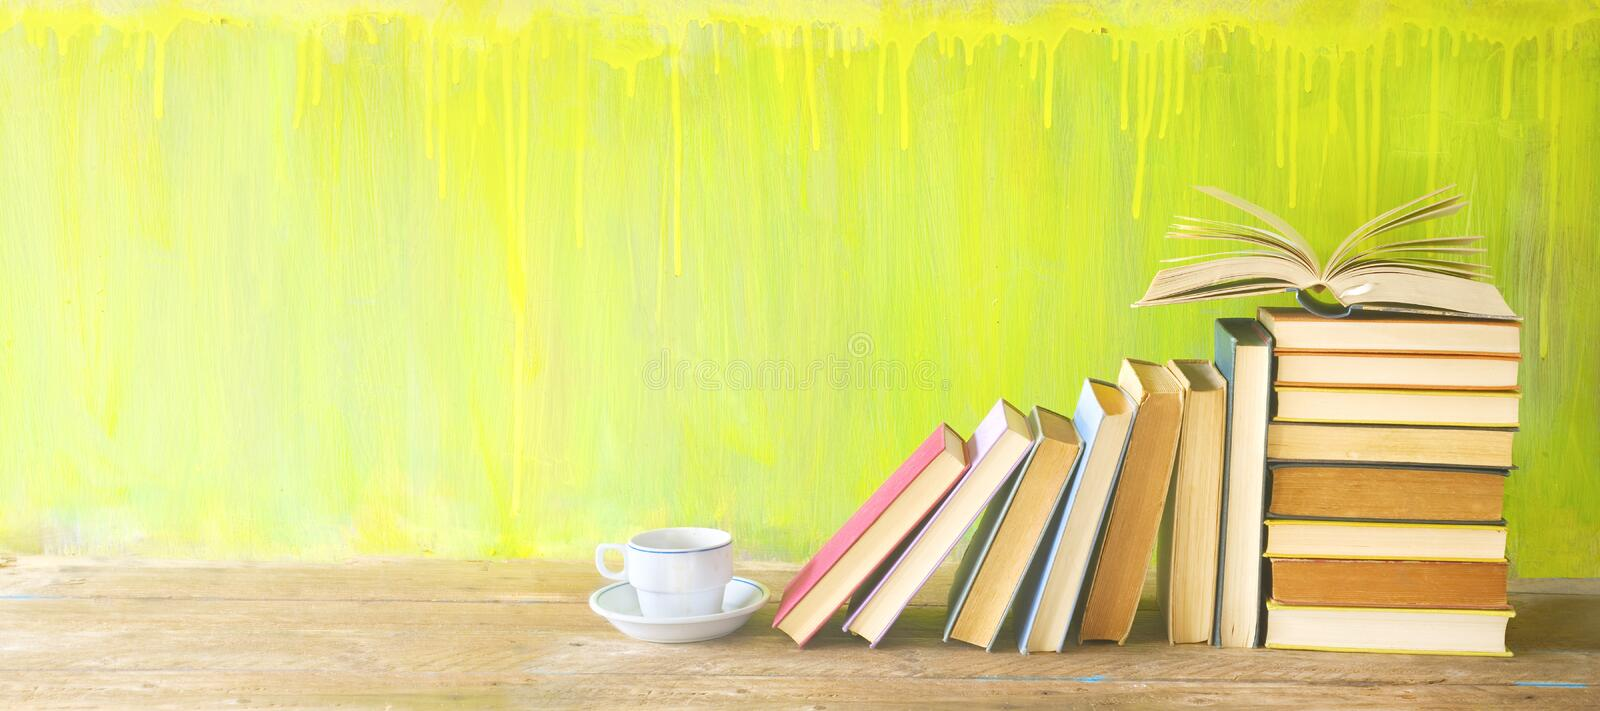 Row of old books and a cup of coffee on a rustic book shelf. royalty free stock photography